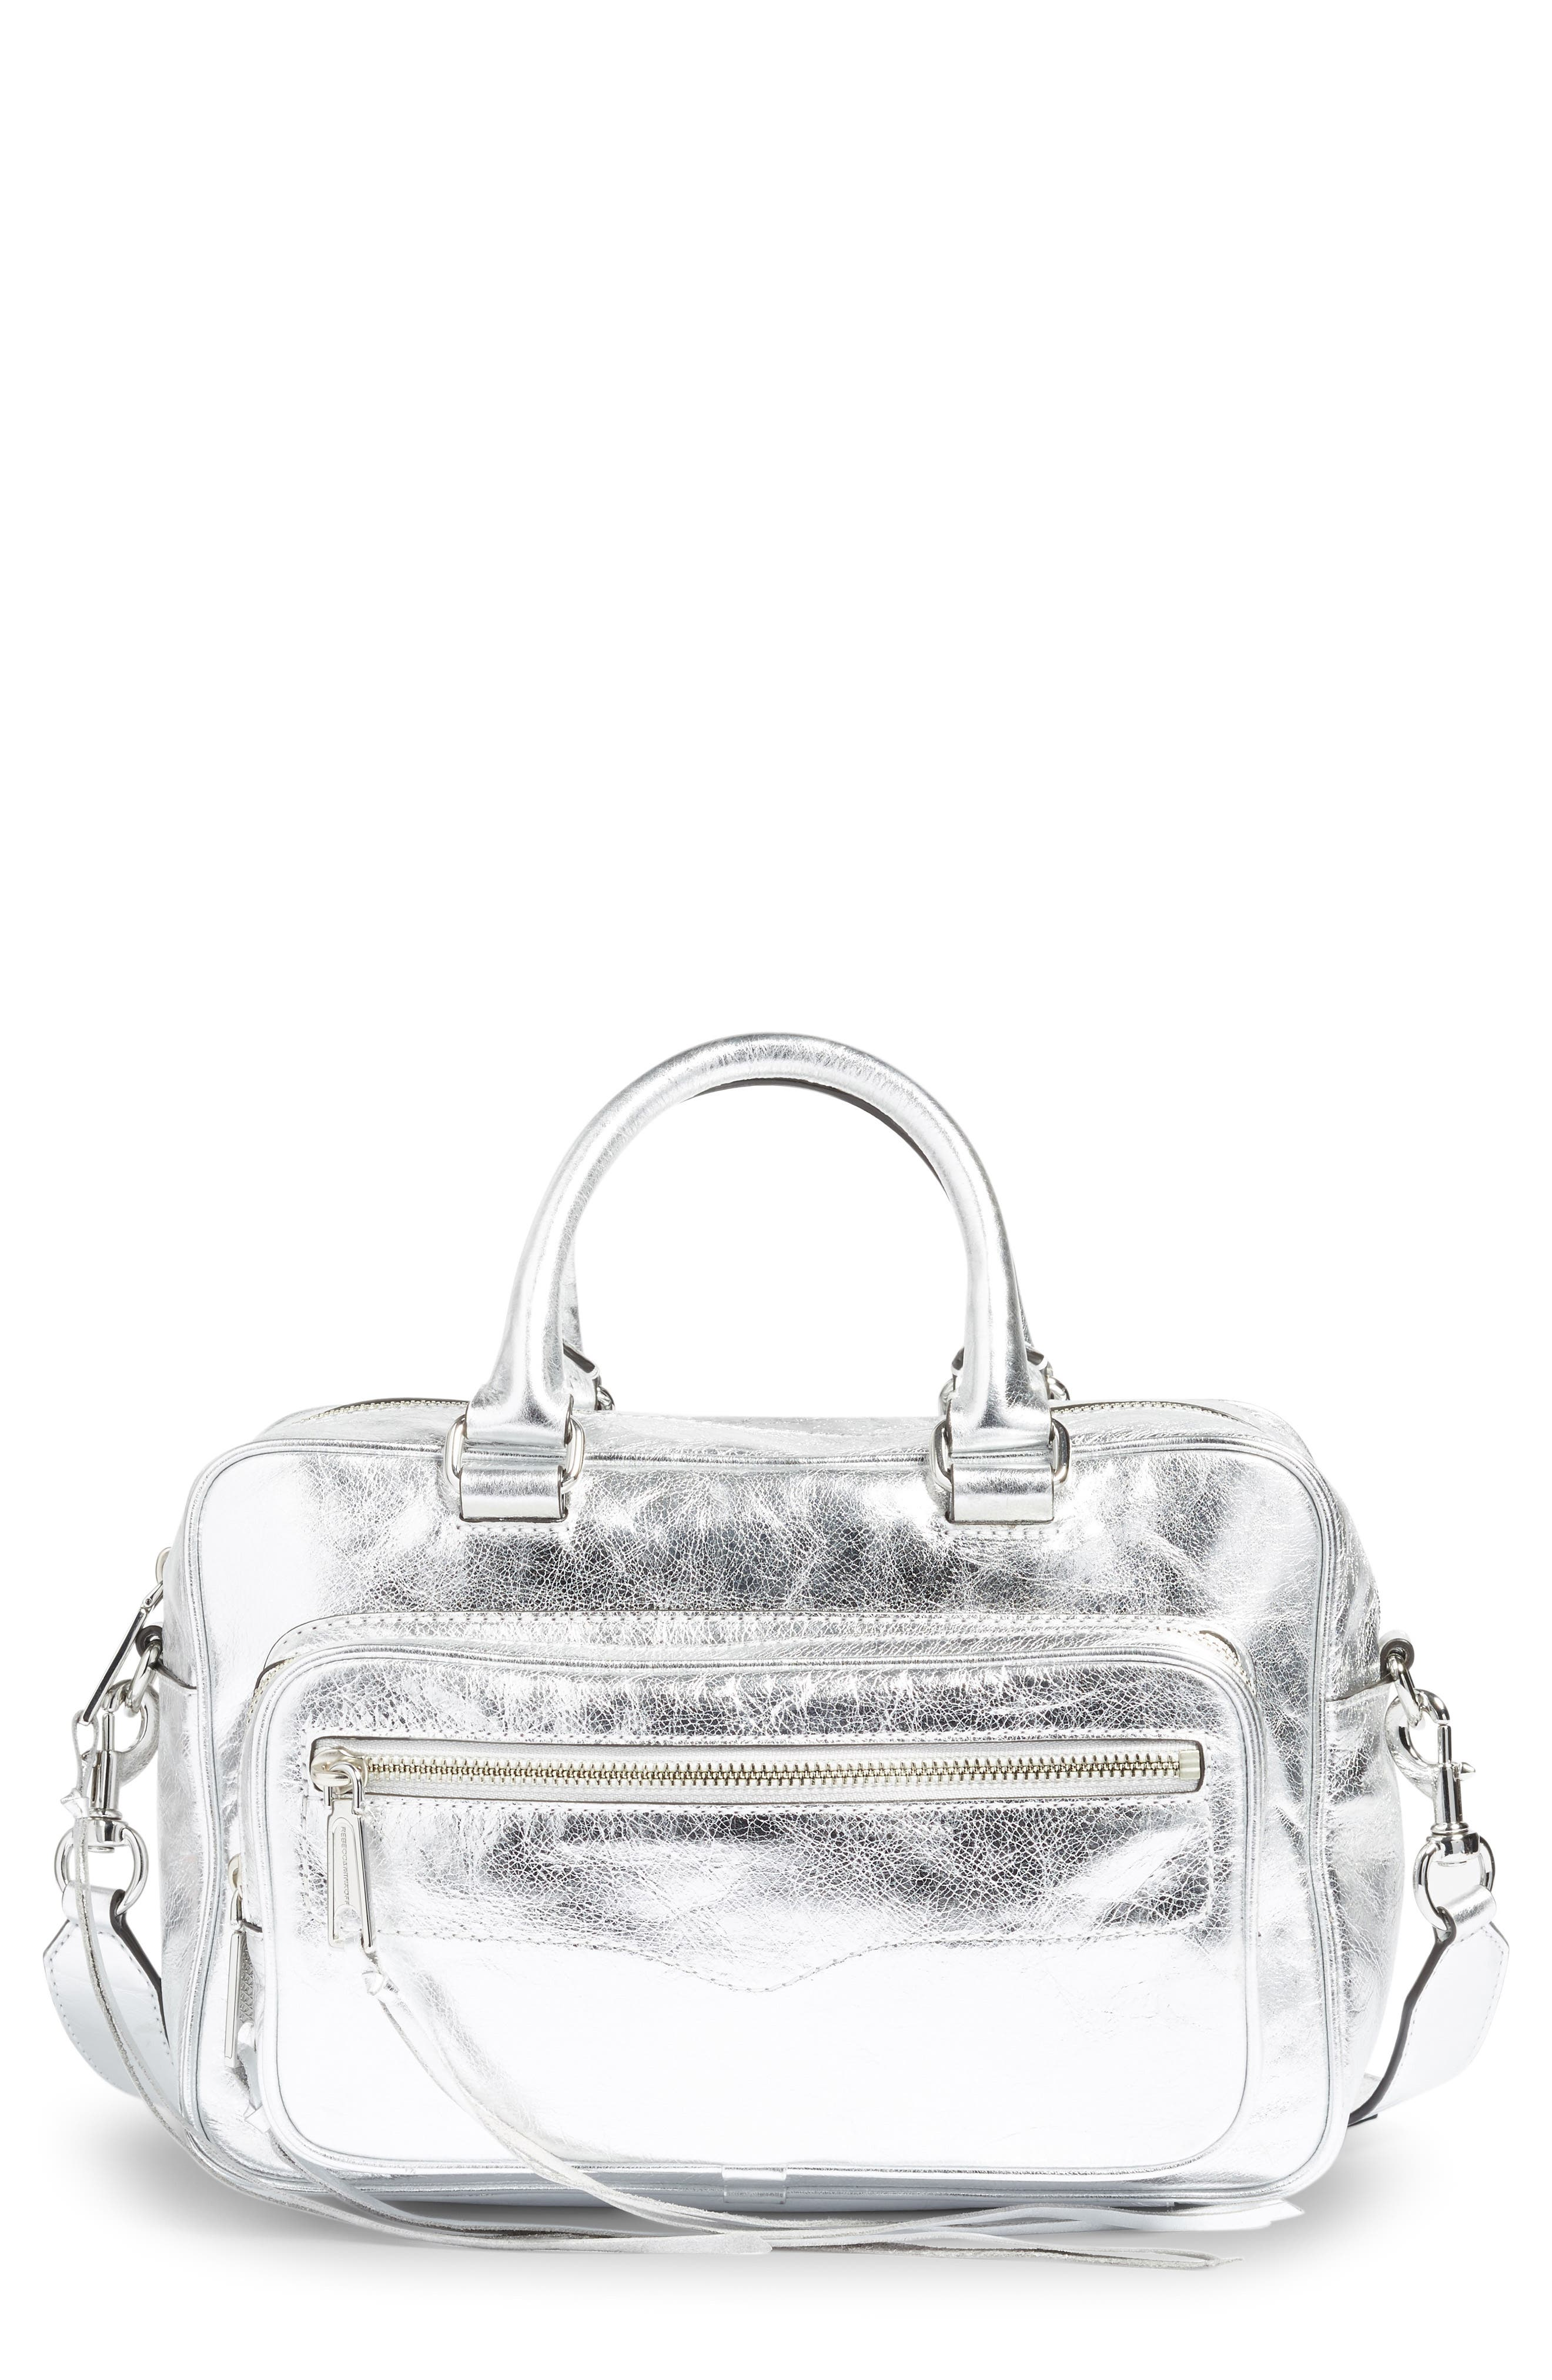 Rebecca Minkoff Solstice Leather Crossbody Duffel Bag